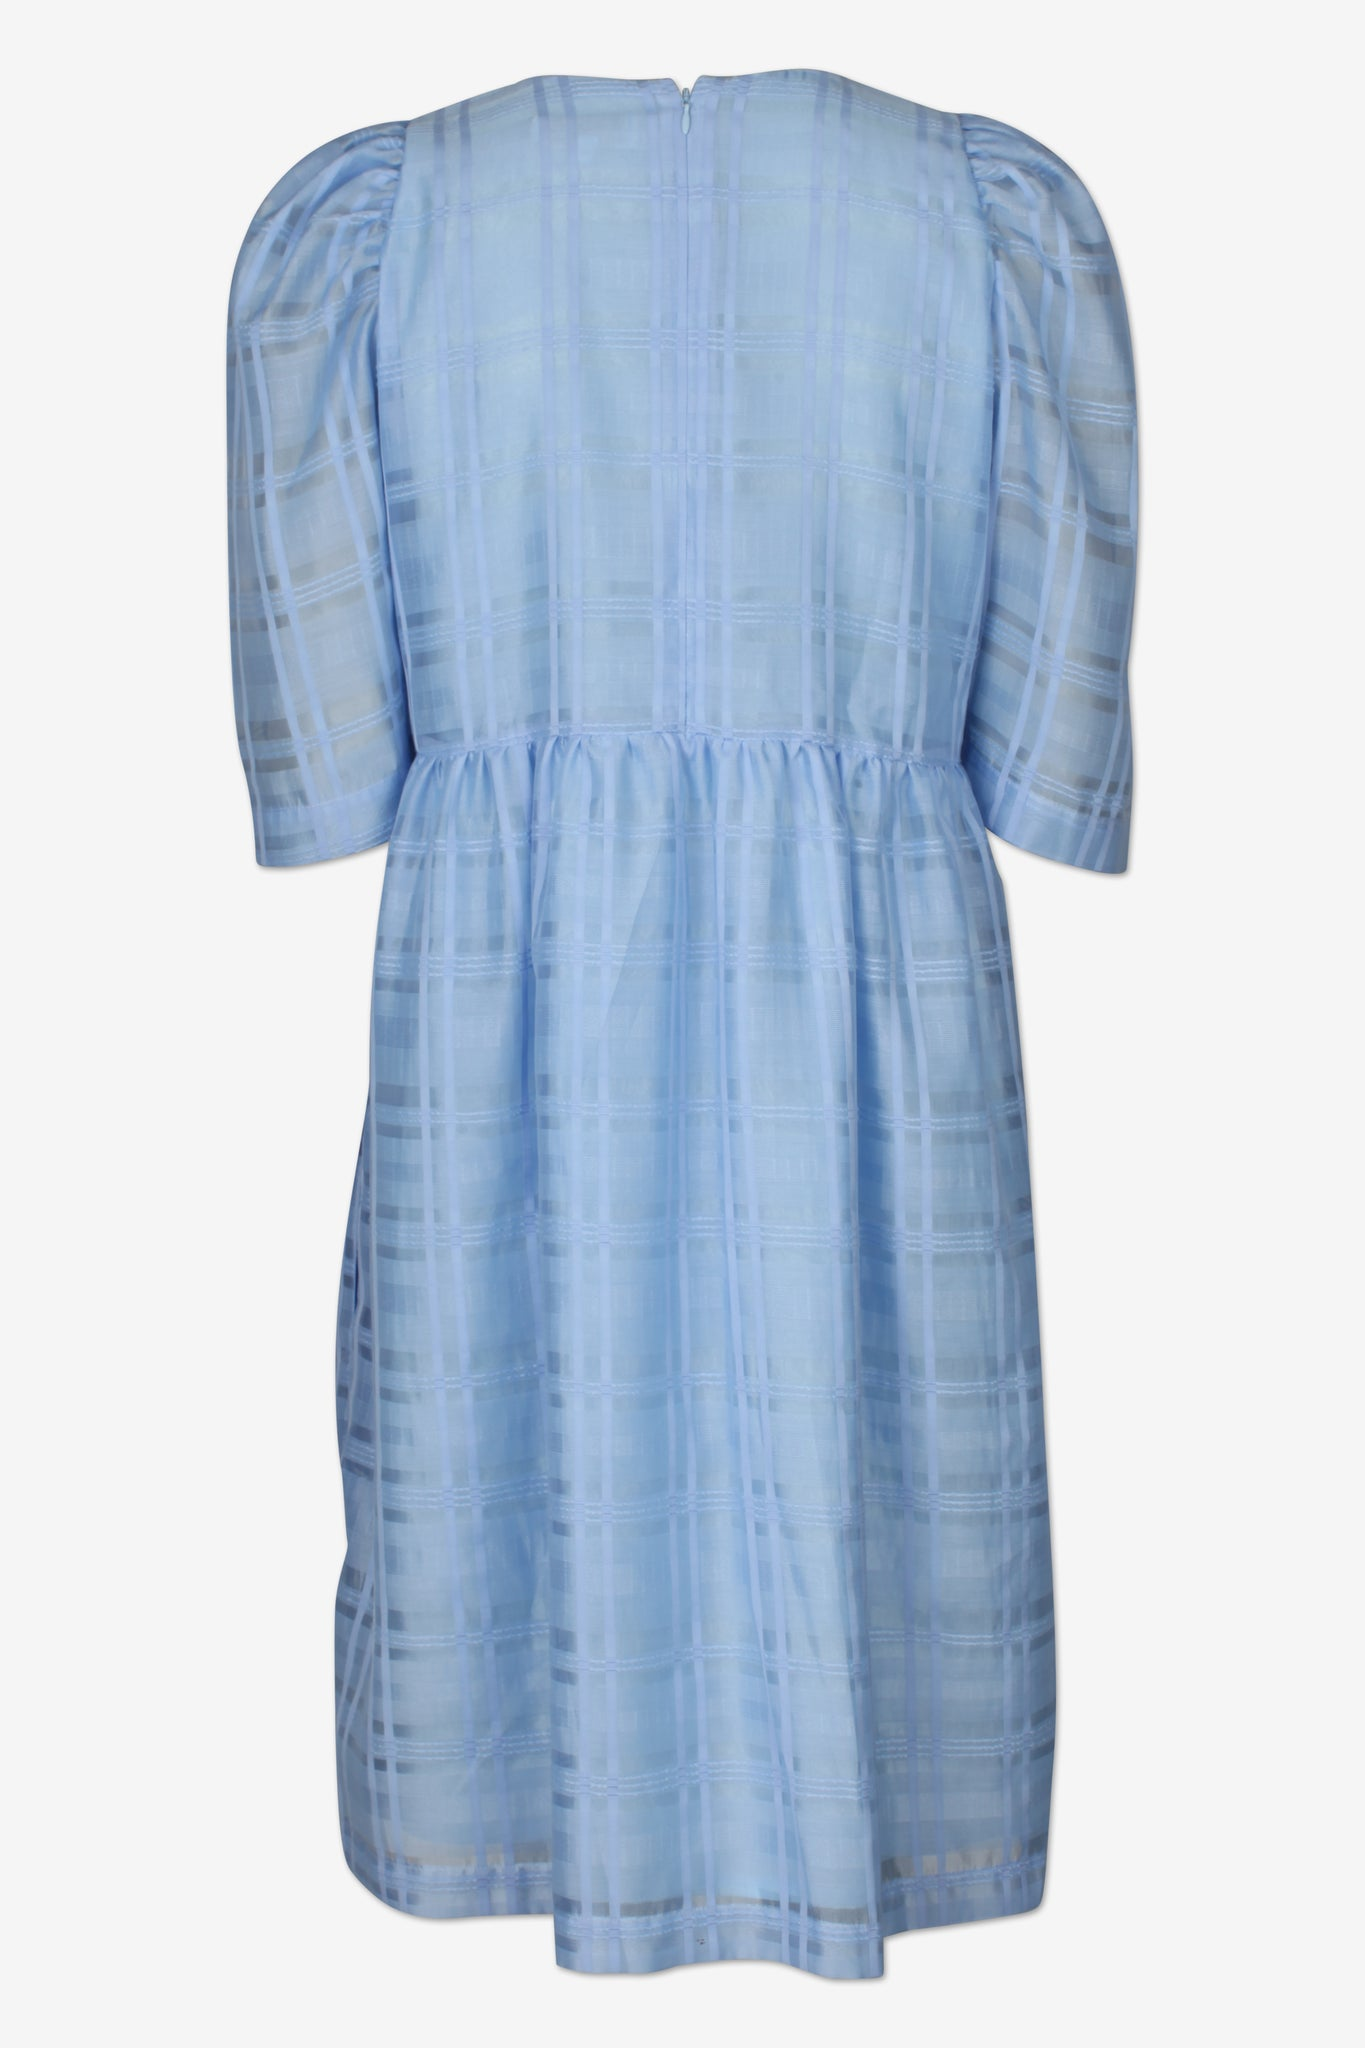 ELOISE DRESS - PLACID BLUE